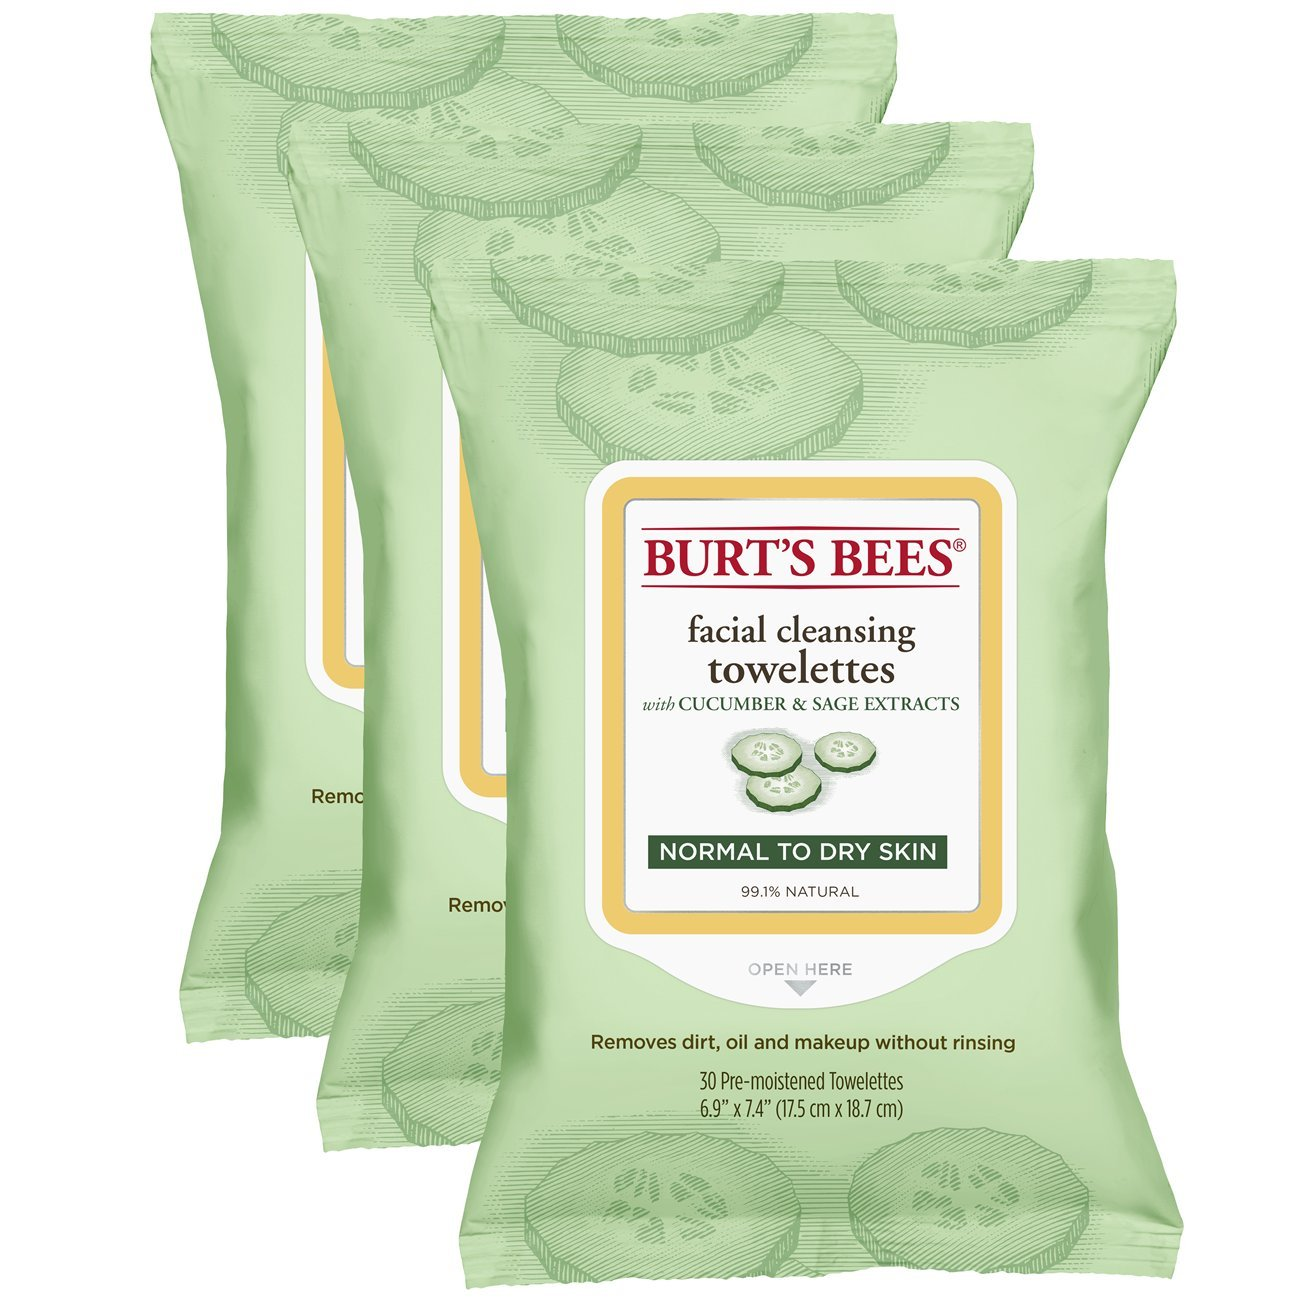 Burt's Bees Sensitive Facial Cleansing Towelettes with White Tea Extract - 30 Count (Pack of 3) Burt' s Bees NA